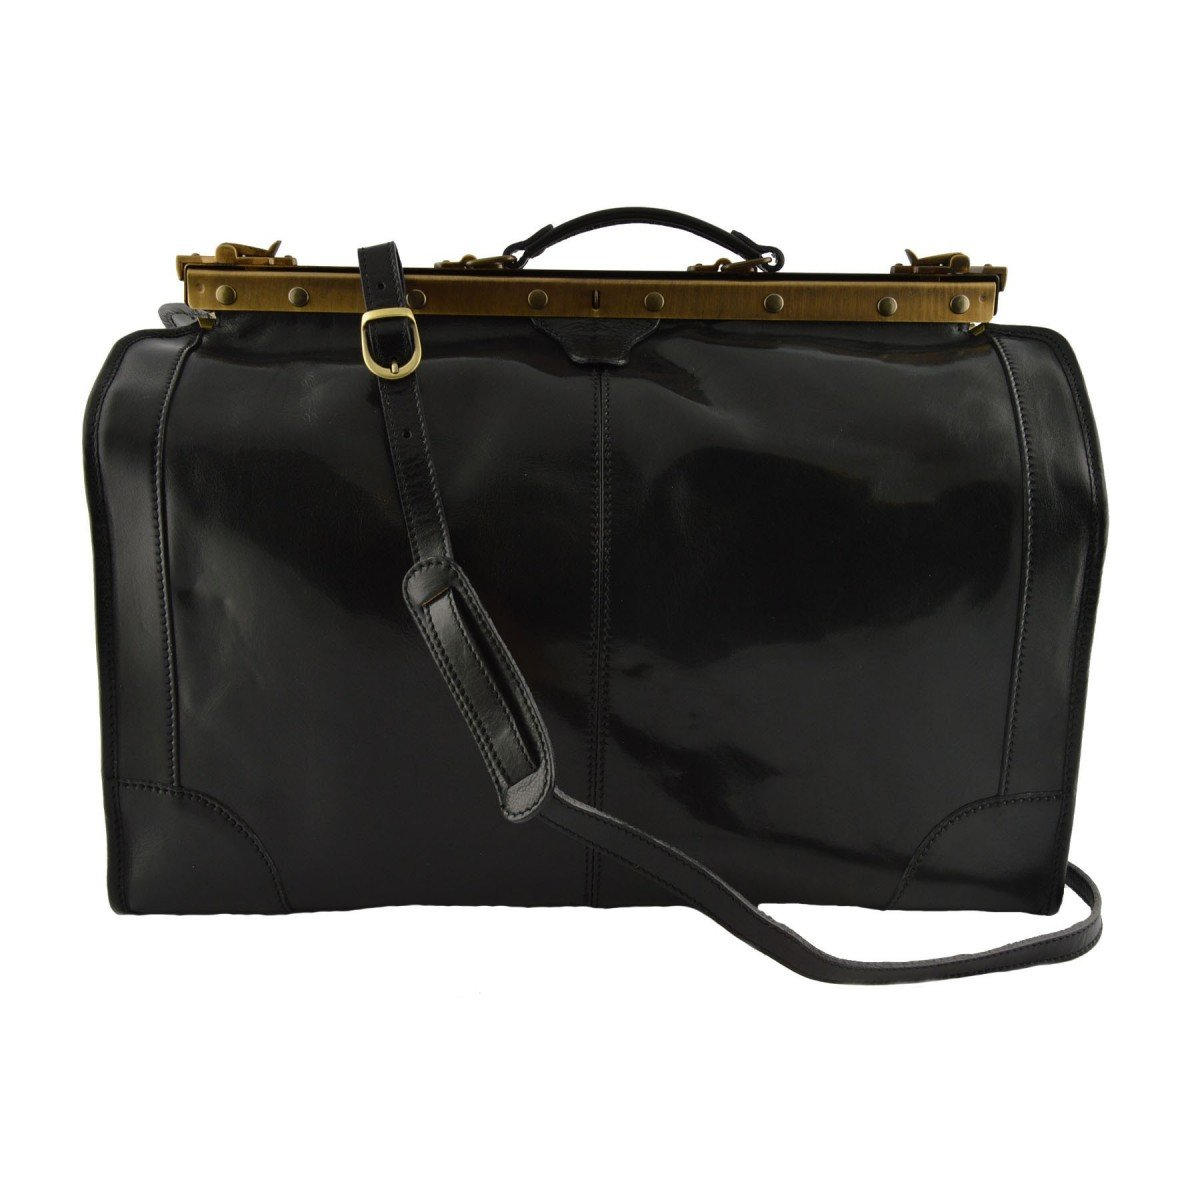 Made In Italy Leather Travel Bag Color Black - Travel Bag B017N8YQHO